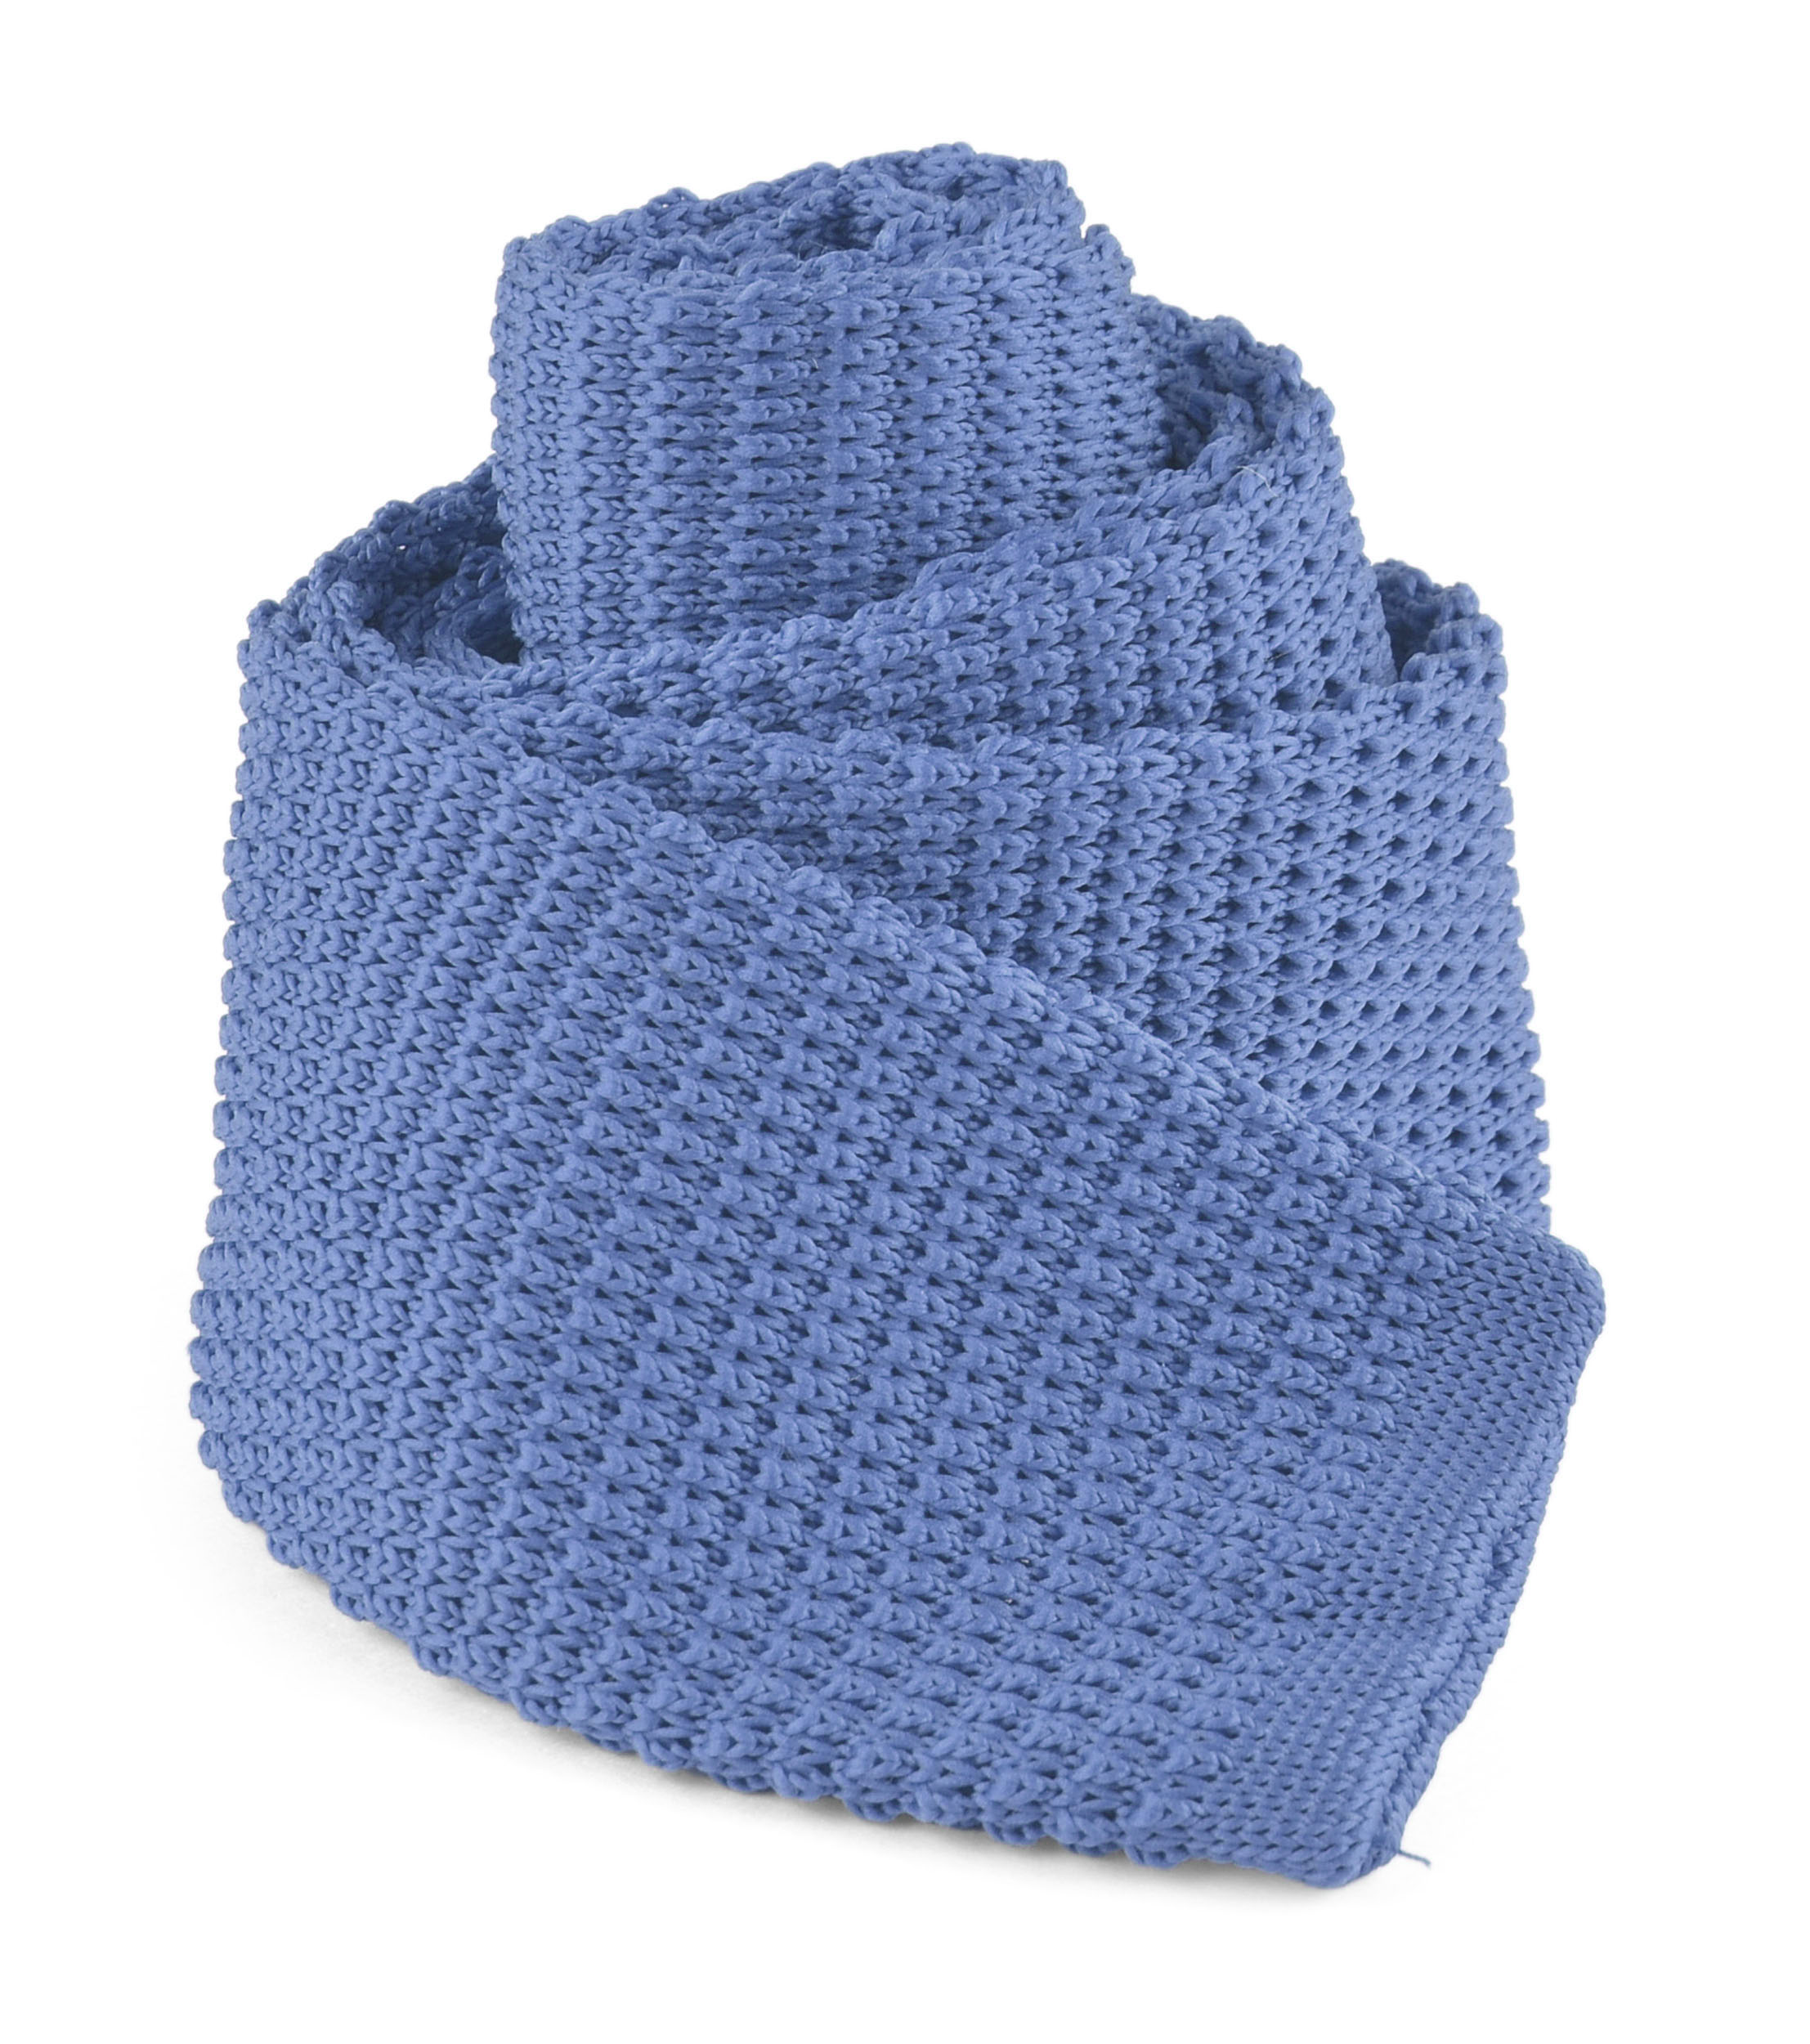 "Moda Di Raza - Mens Casual Solid Color Waffle Knit Woven Square End Neck Tie - 2.25"" - Ocean Blue"